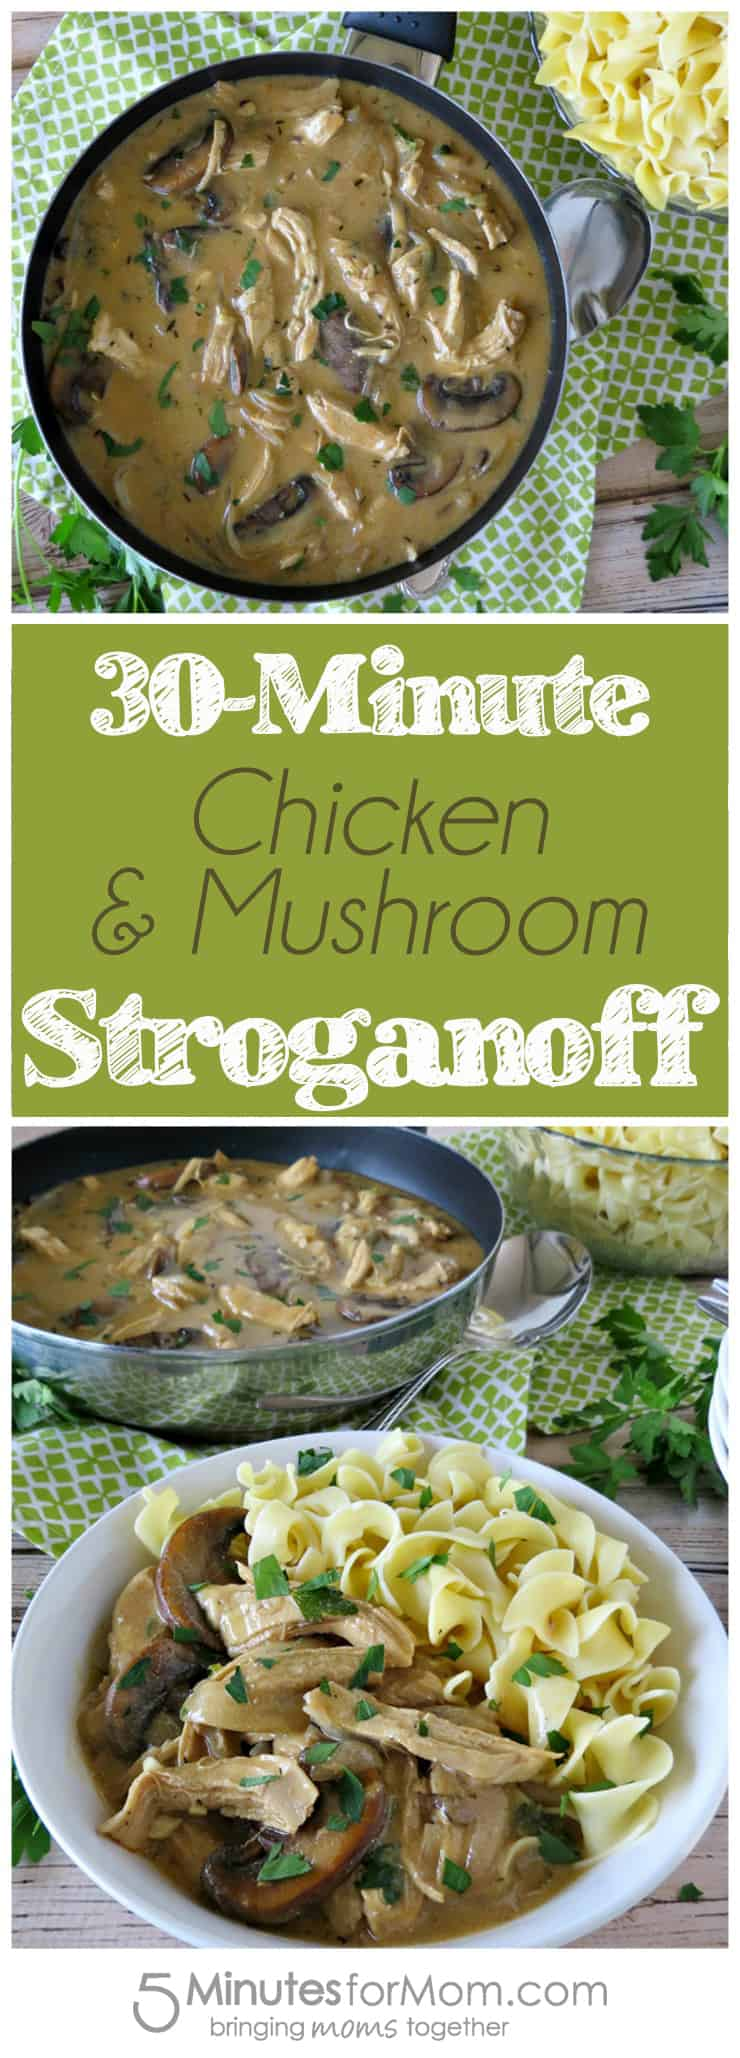 30 Minute Chicken and Mushroom Stroganoff - This stroganoff recipe comes together in about 30 minutes, but it tastes like it's been cooking all day! Pin